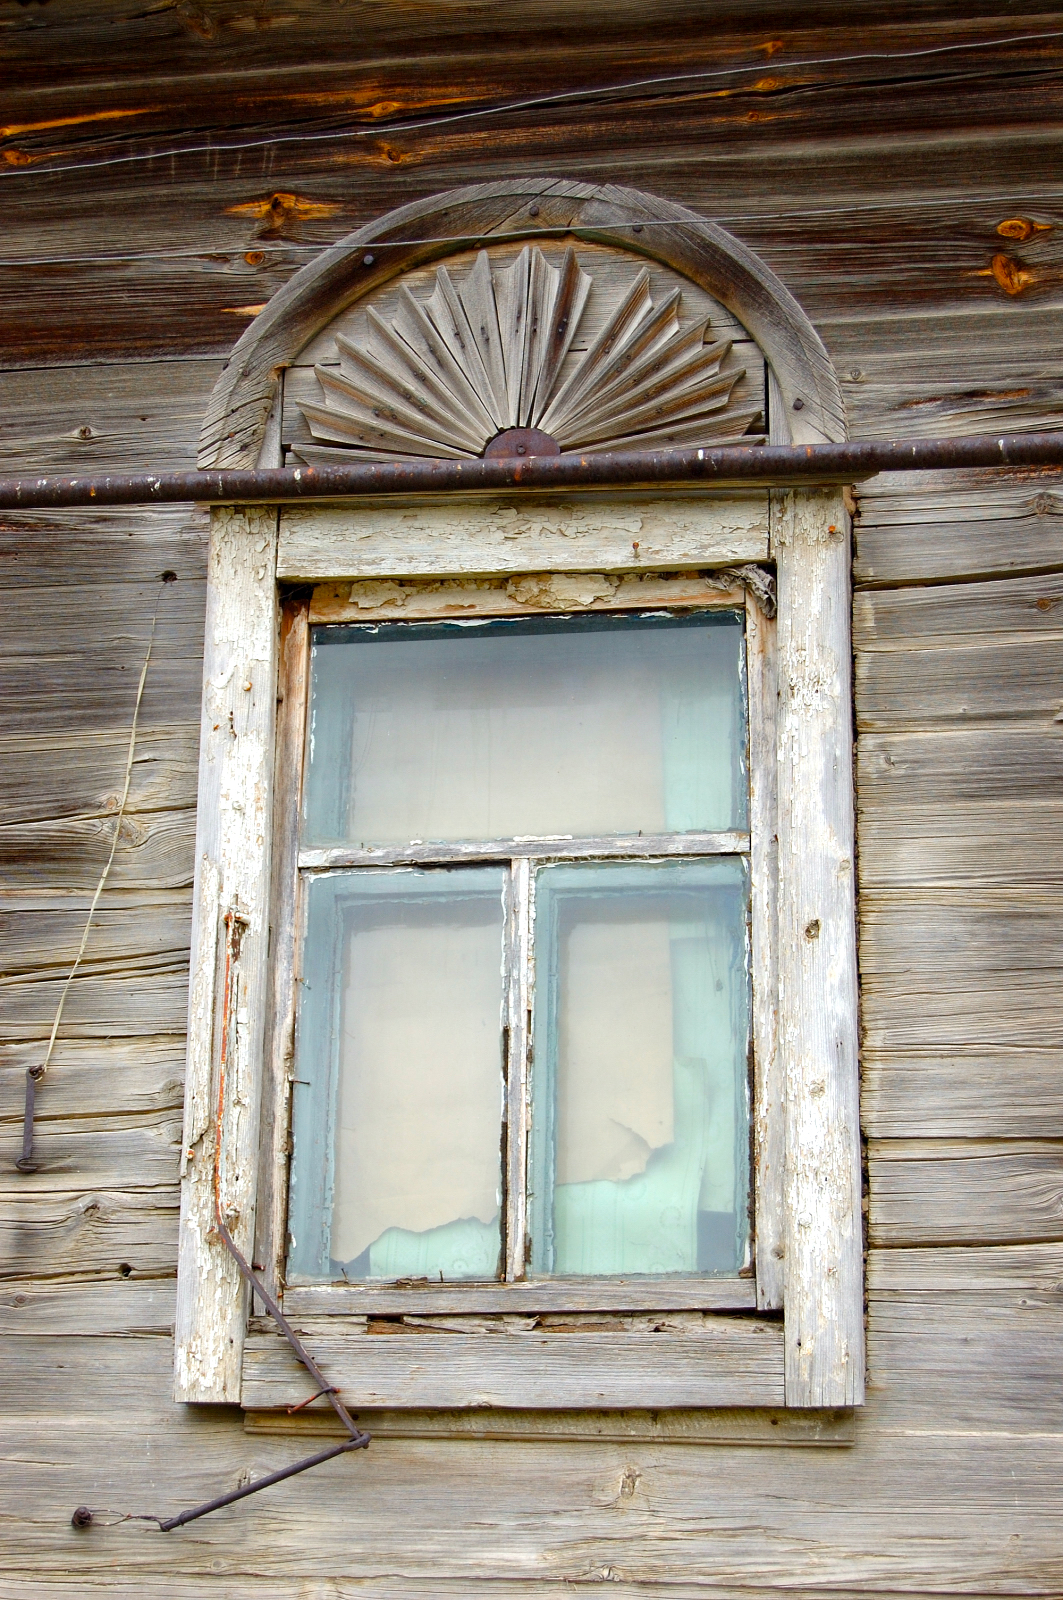 Window in Grimm. Courtesy of Steve Schreiber (2006).